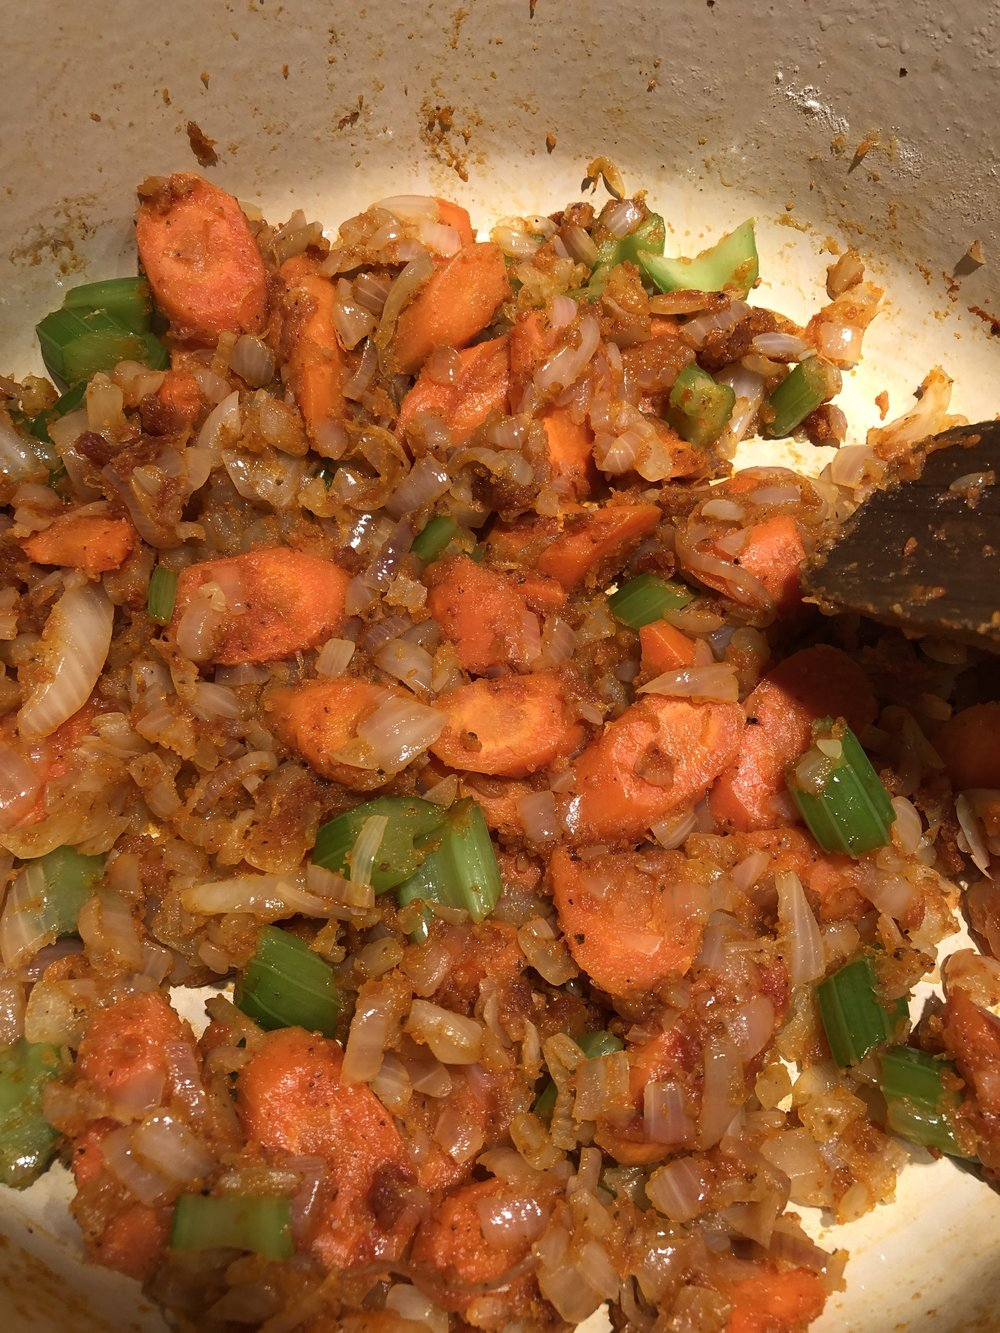 Cook onions, shallot, carrots and celery with tomato paste